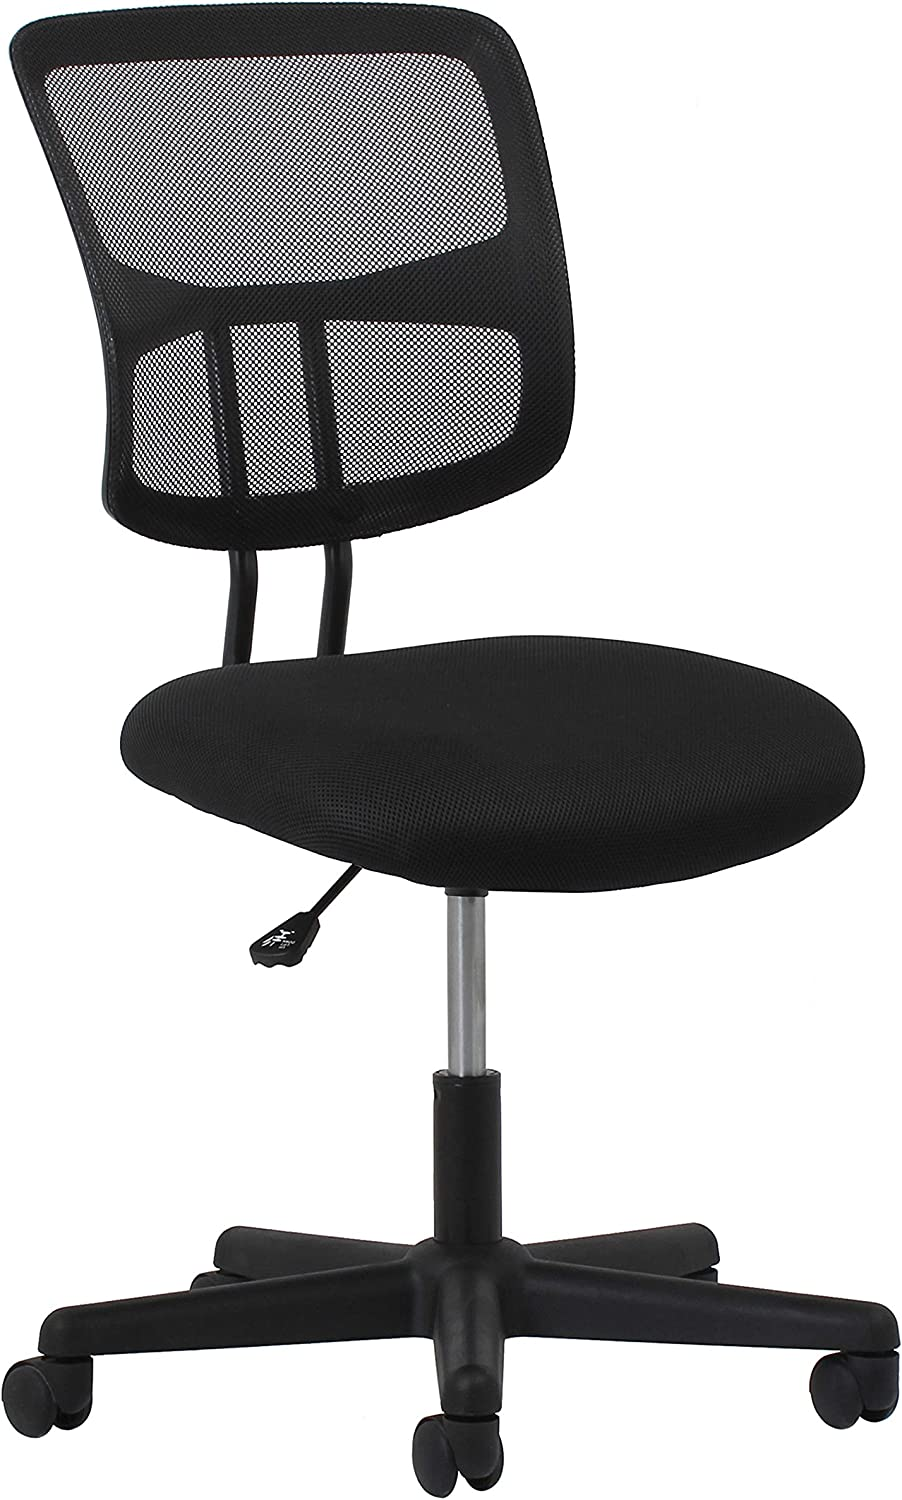 Essentials Swivel Armless Mid Back Mesh Task Chair – Ergonomic Computer Office Chair